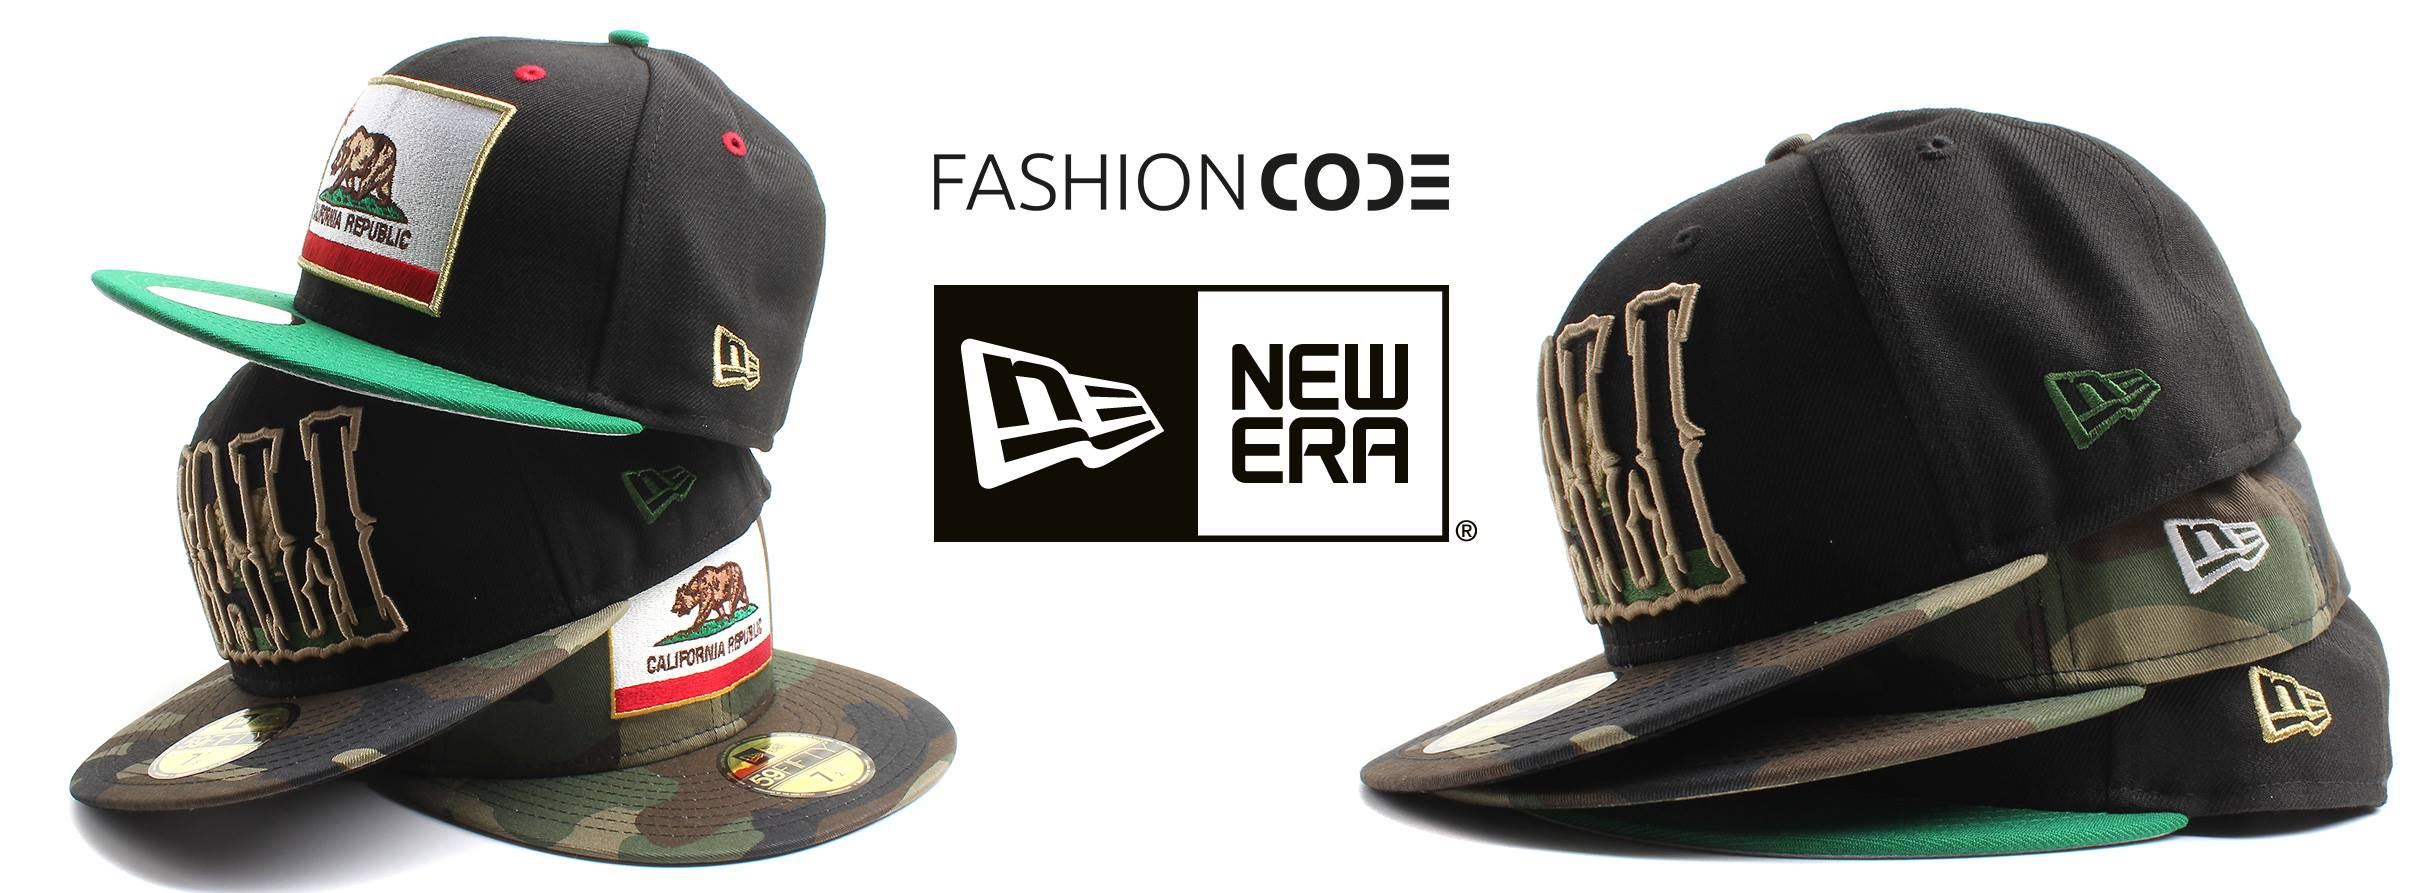 About Fashioncode Homepage